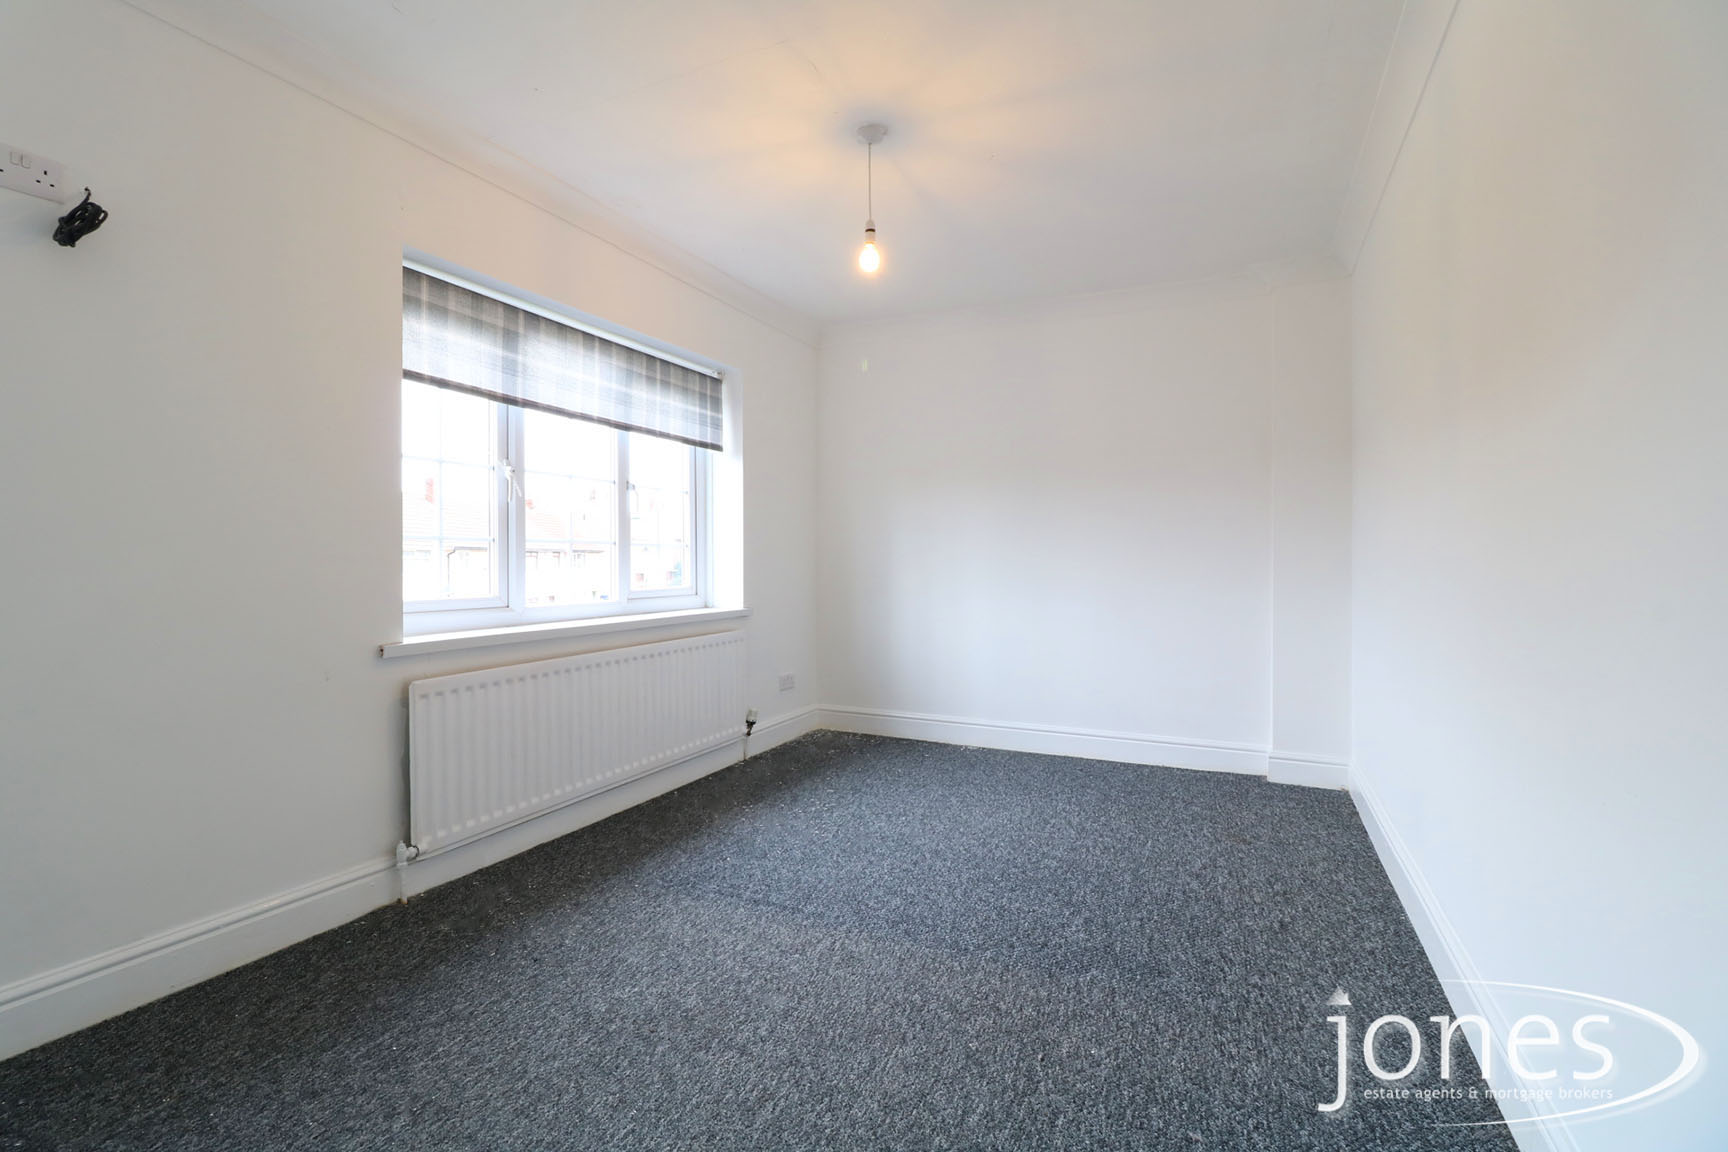 Home for Sale Let - Photo 06 Keats Road, Normanby, Middlesbrough, TS6 0RP